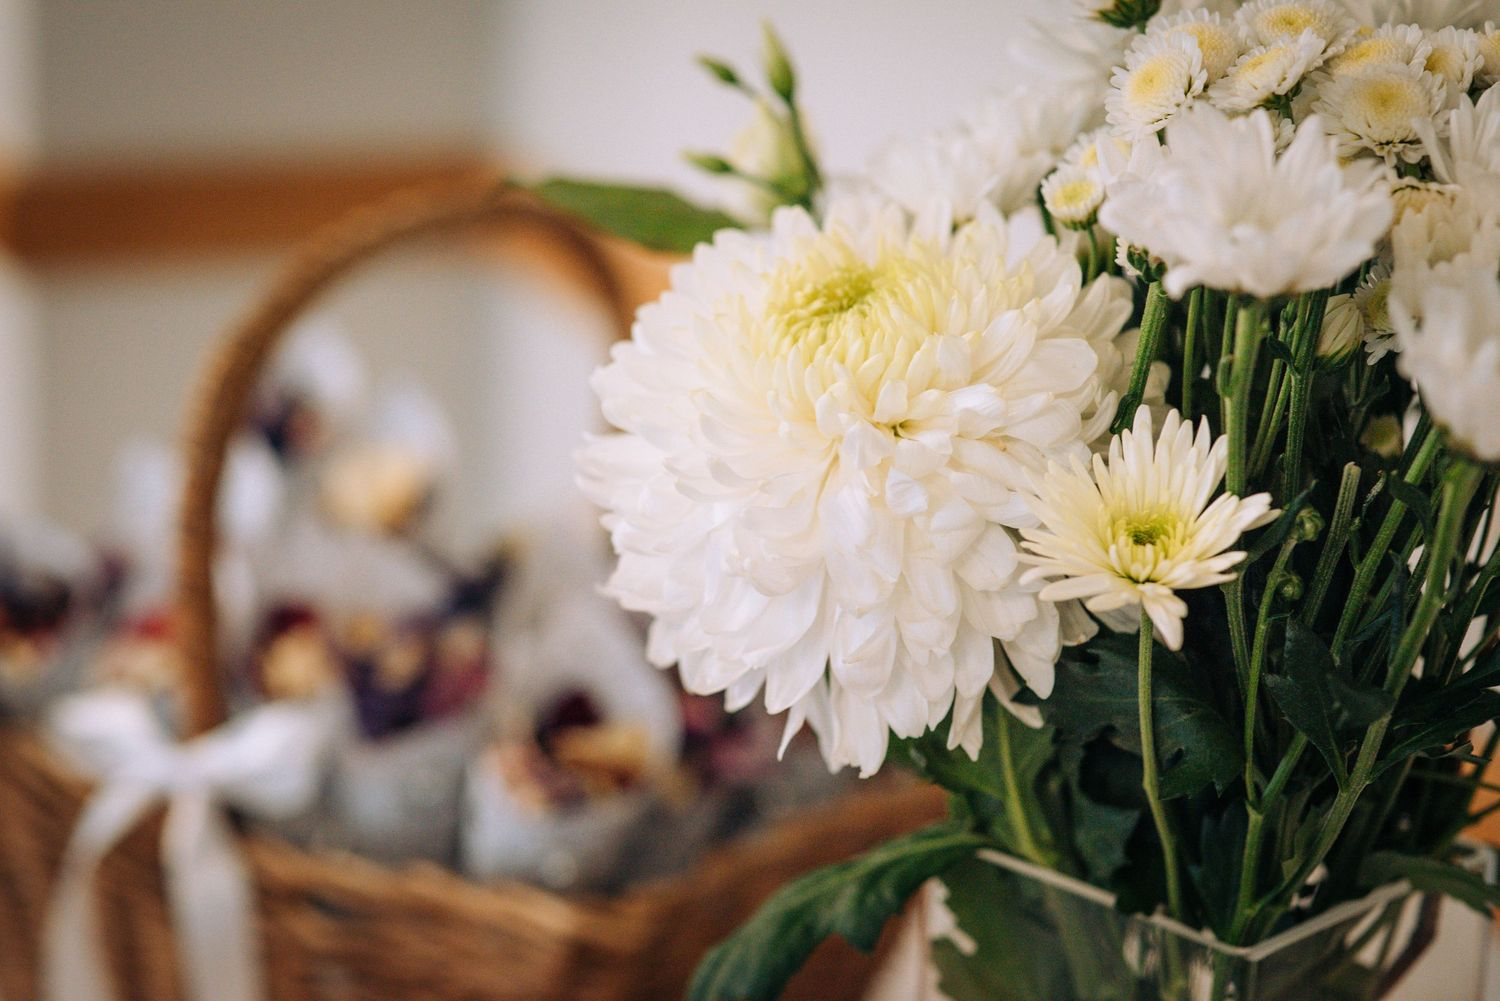 Pukrup Hall wedding by Zara Davis Photography, Gloucestershire wedding flowers